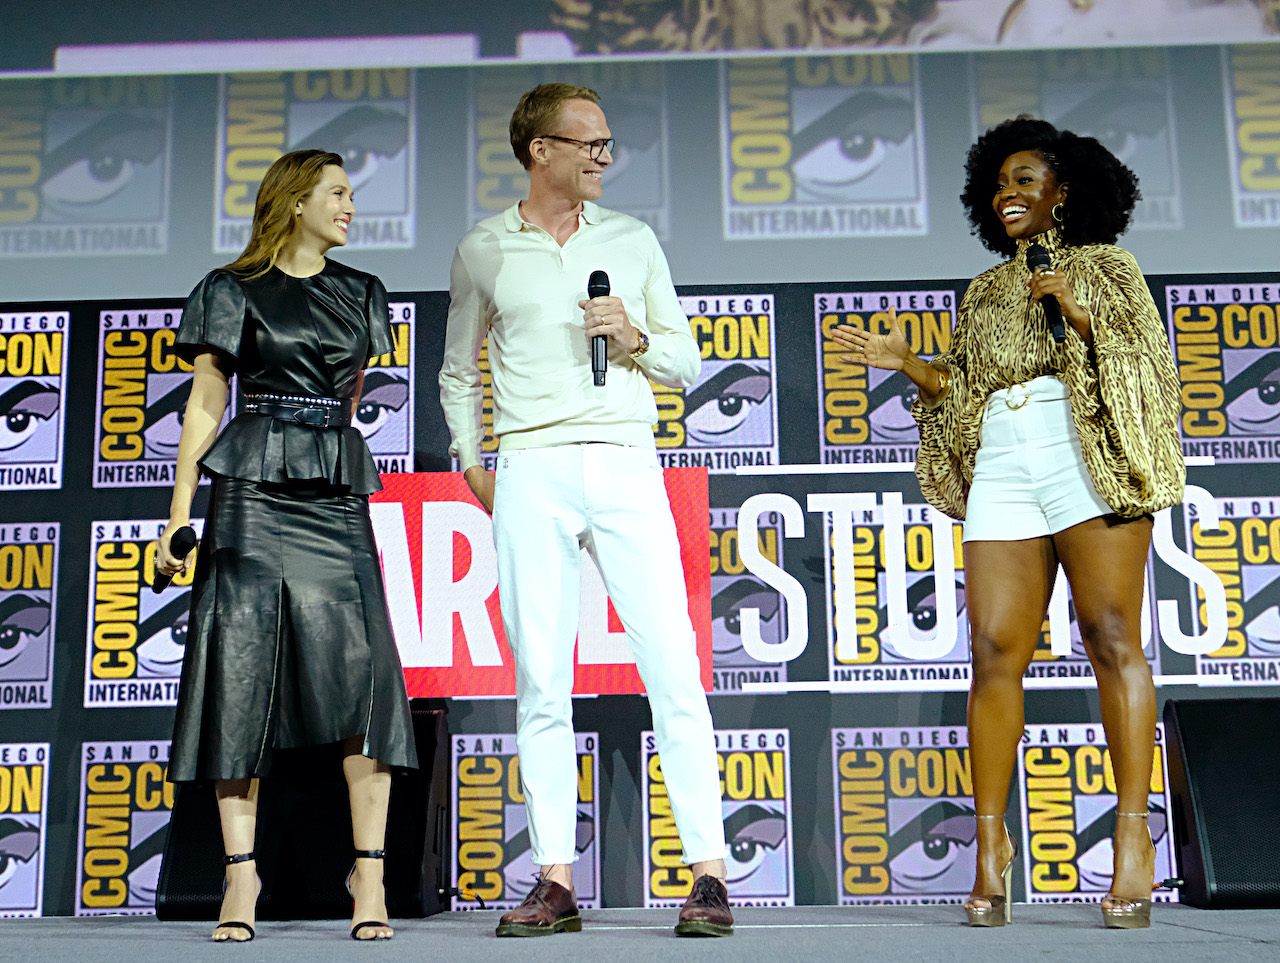 Elizabeth Olsen, Paul Bettany and Teyonah Parris of Marvel Studios' 'WandaVision' at the San Diego Comic-Con